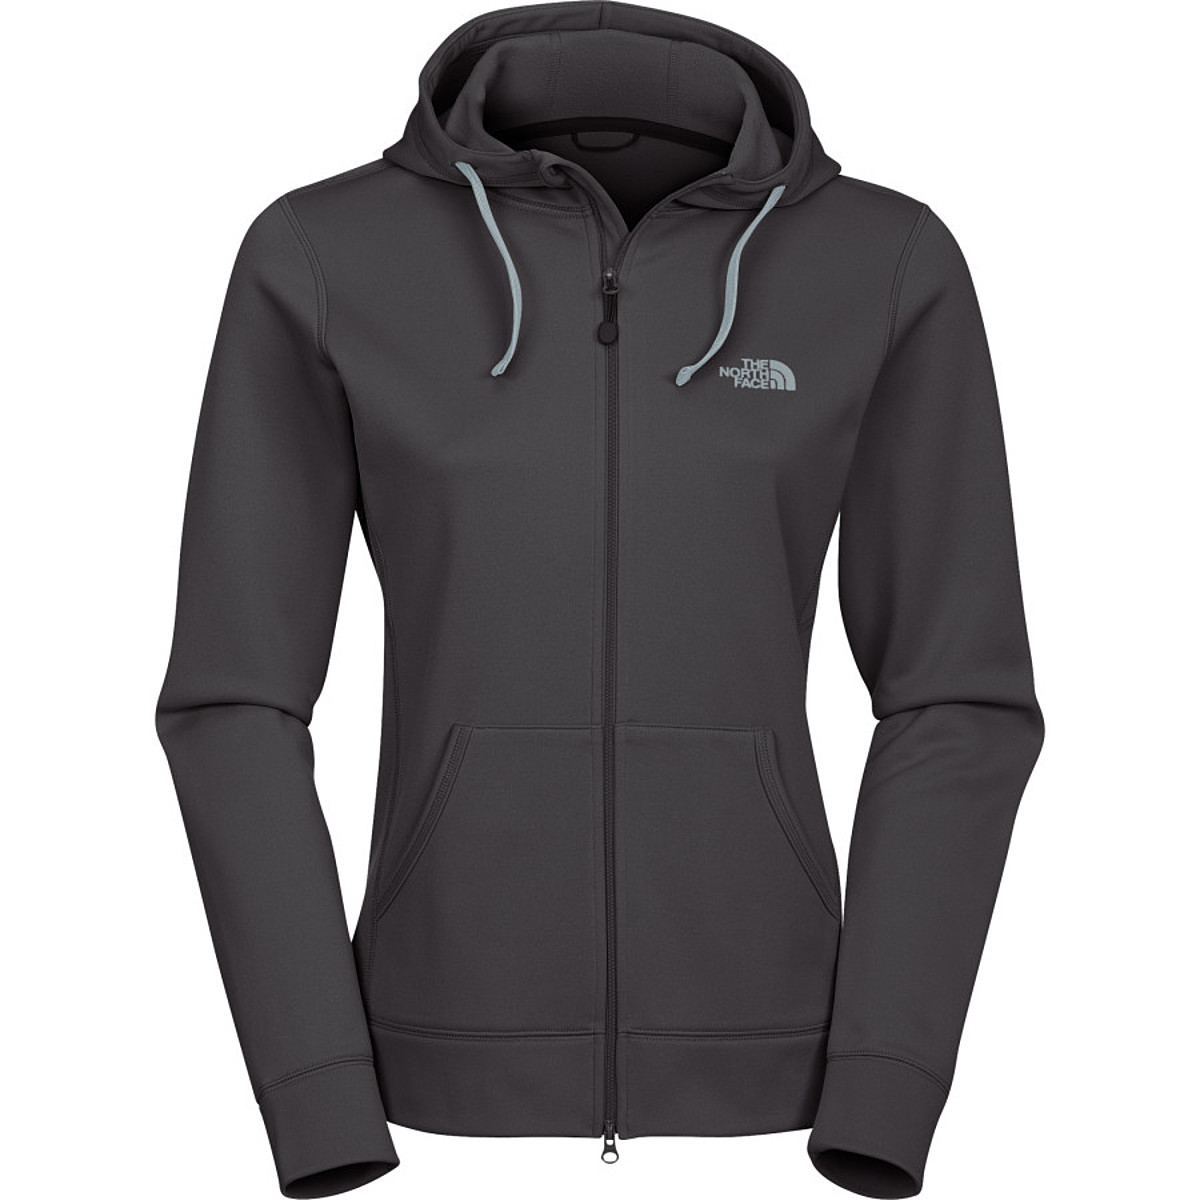 The North Face Fave-Our-Ite Full-Zip Hoodie